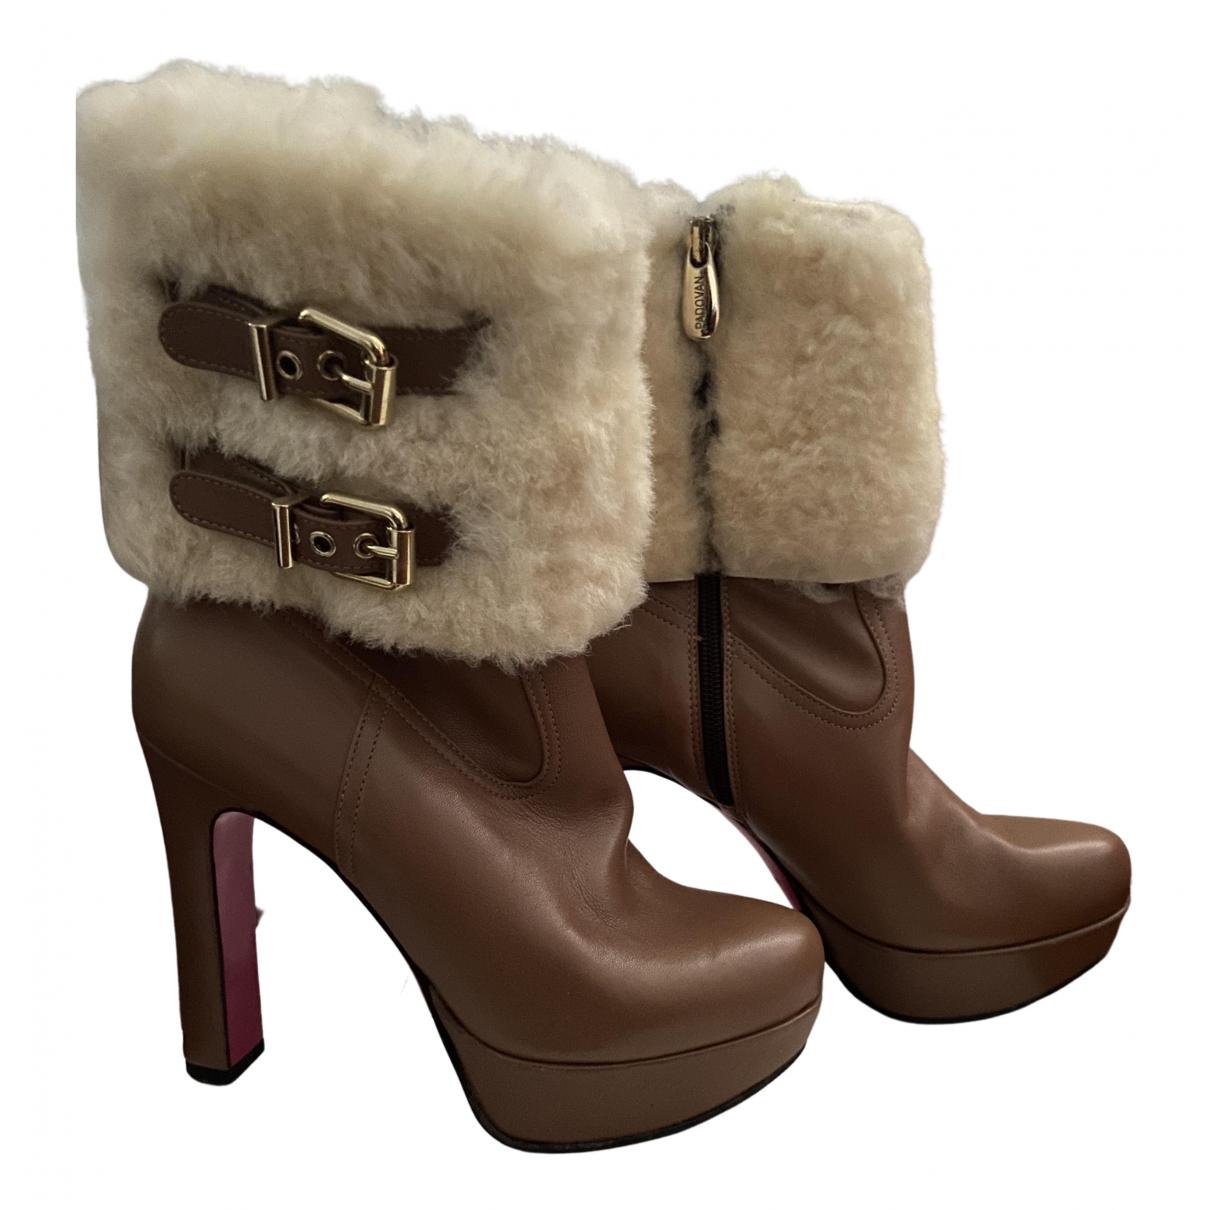 Luciano Padovan N Beige Shearling Ankle boots for Women 37.5 IT